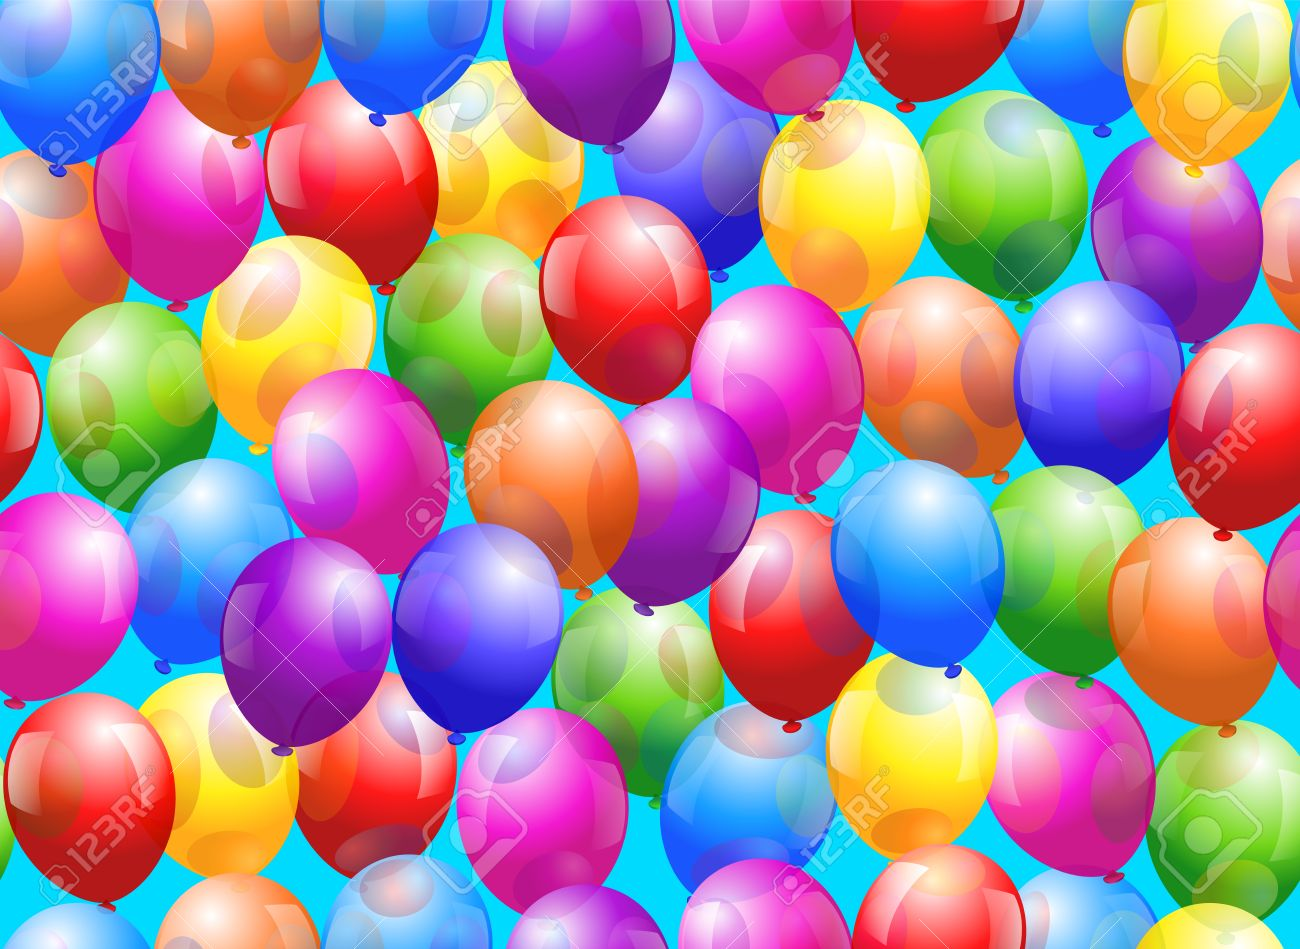 Colorful Glossy Balloons